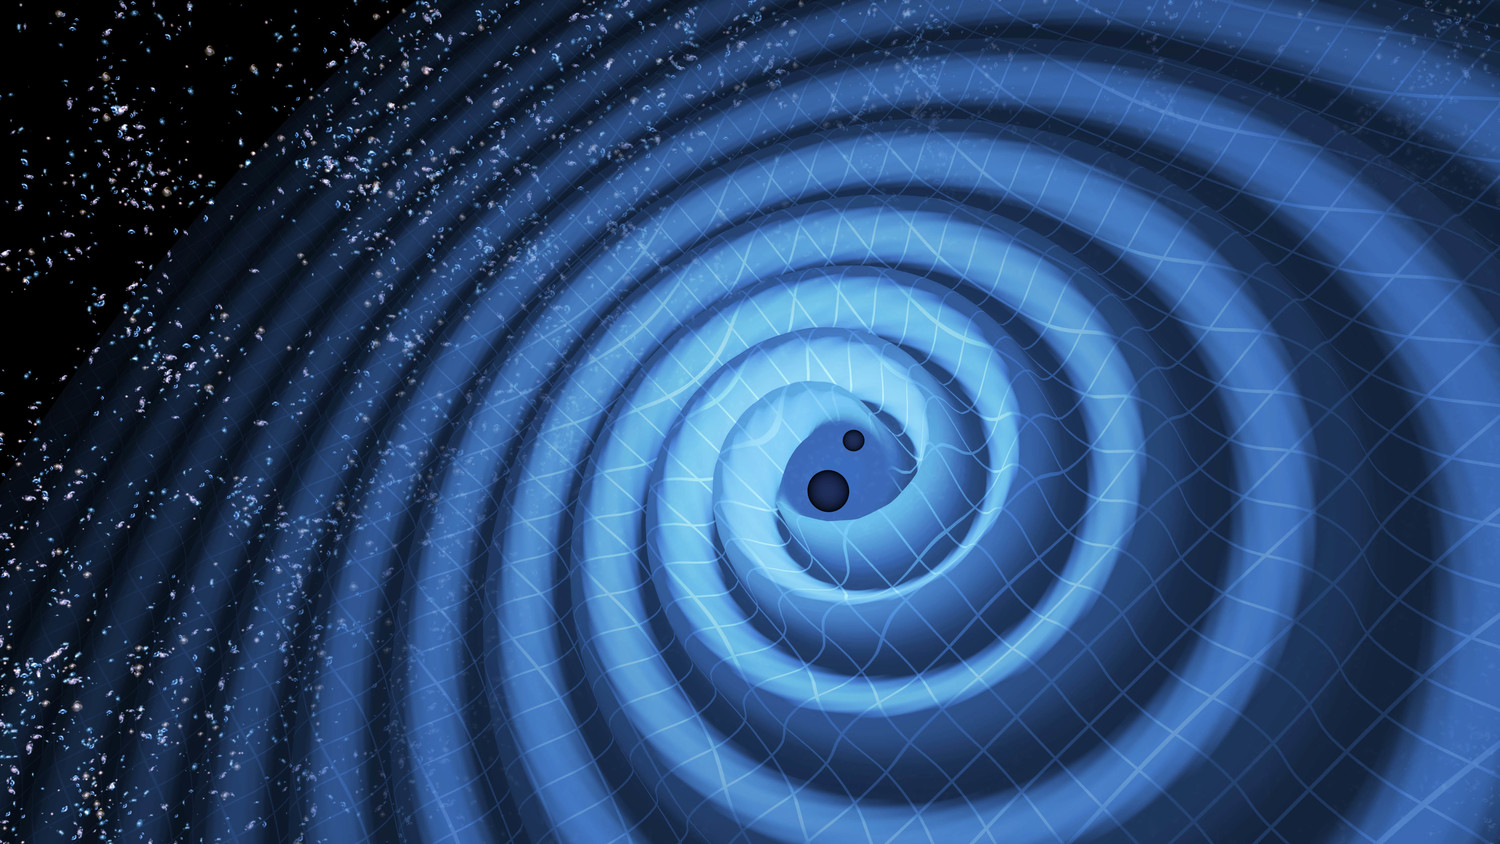 Gravity_Waves_StillImage.jpg